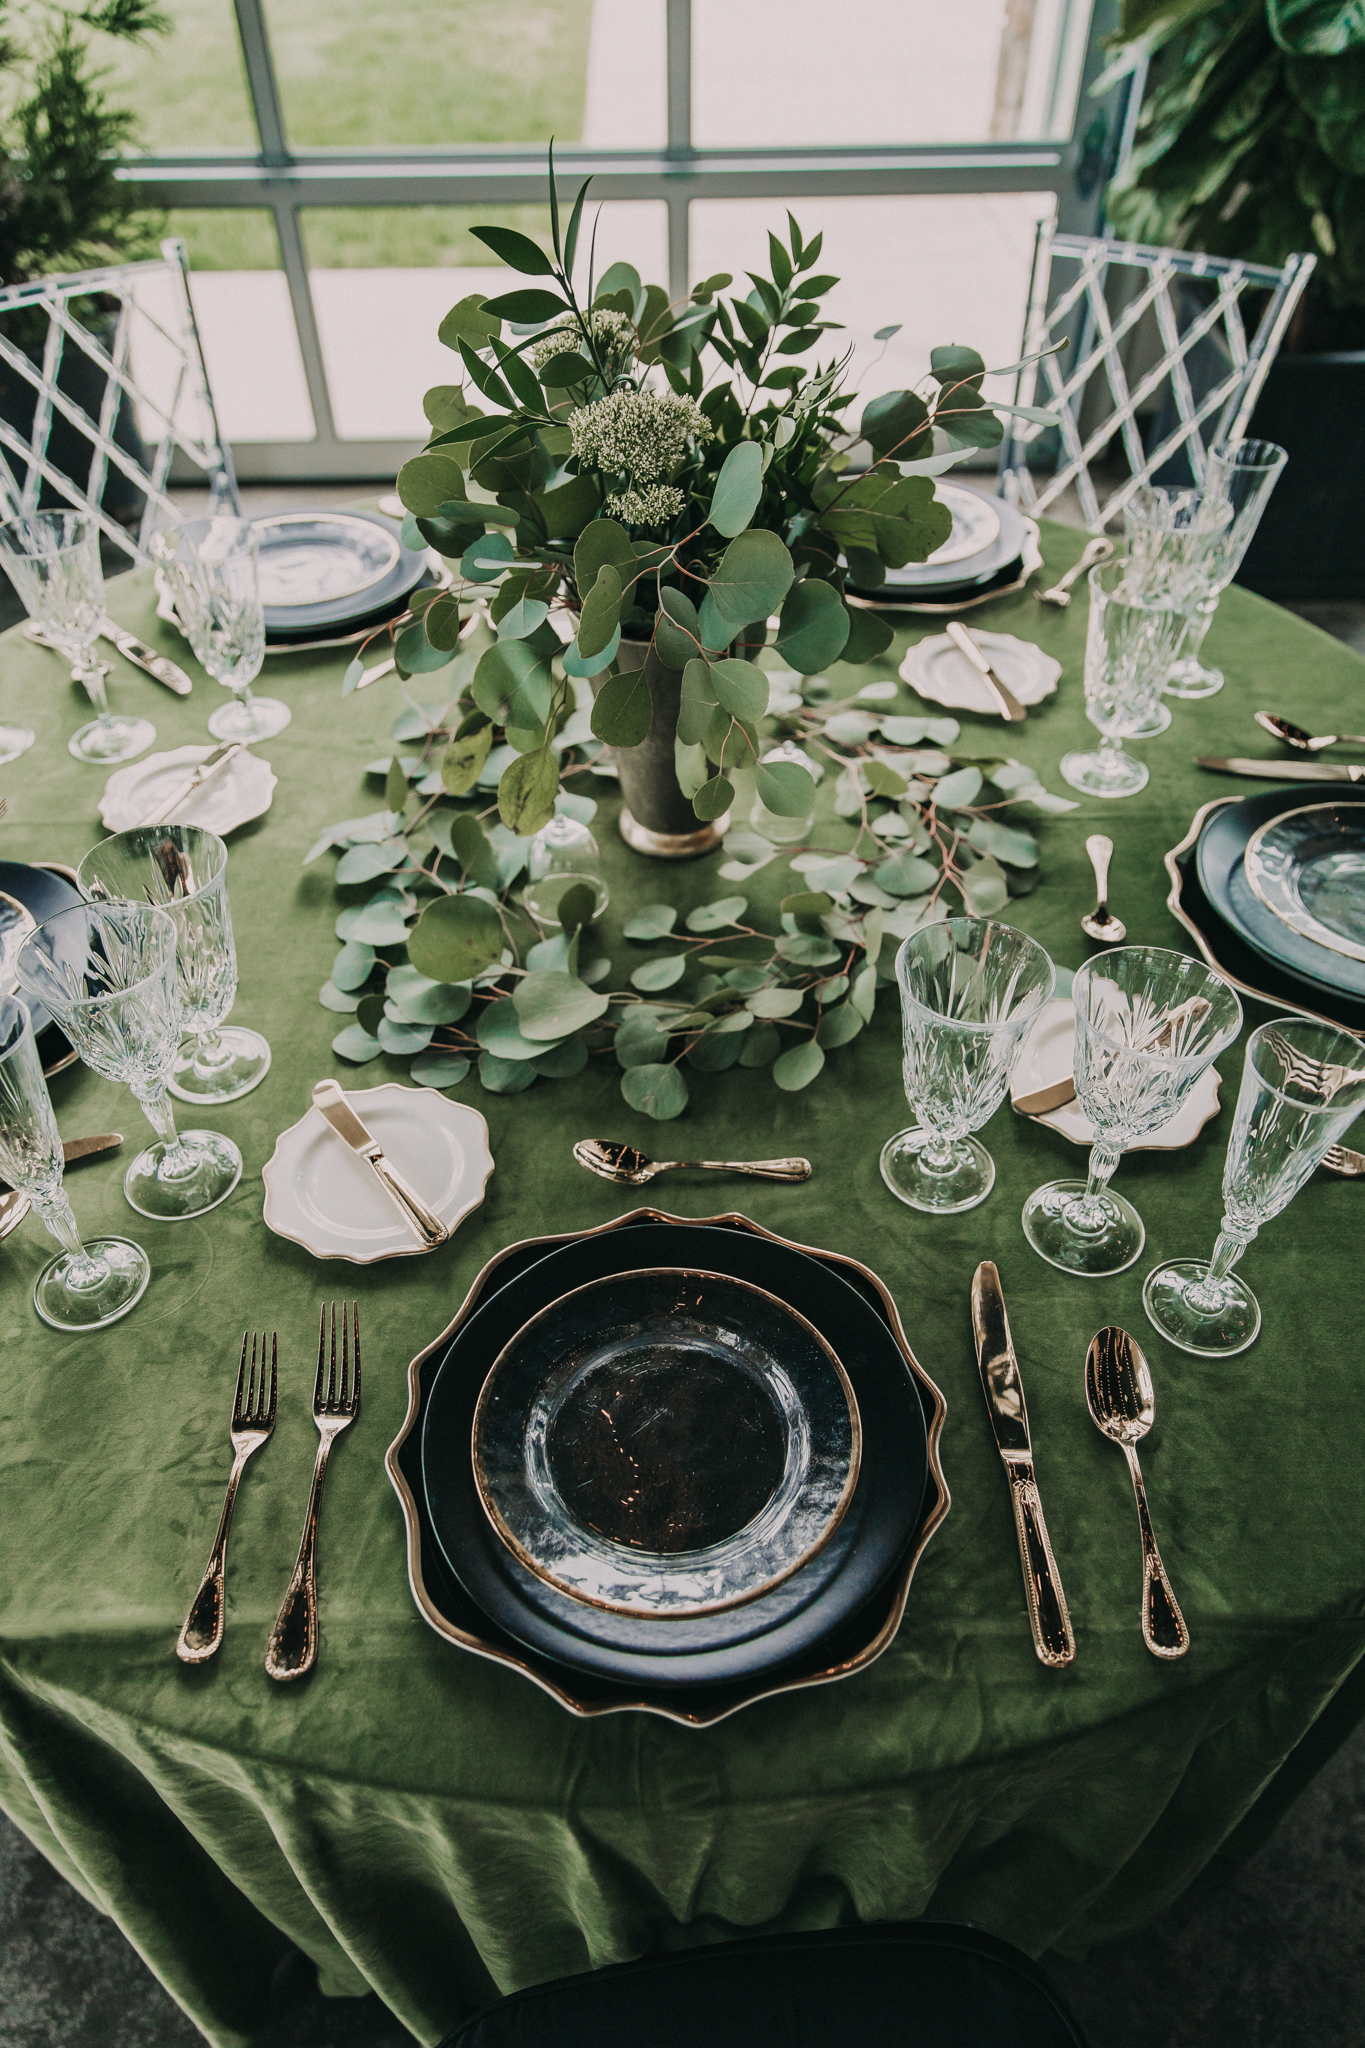 Wedding table setting: Shades of Green Legacy Styled Shoot by Music City Events and Billie-Shaye Style featured on Nashville Bride Guide